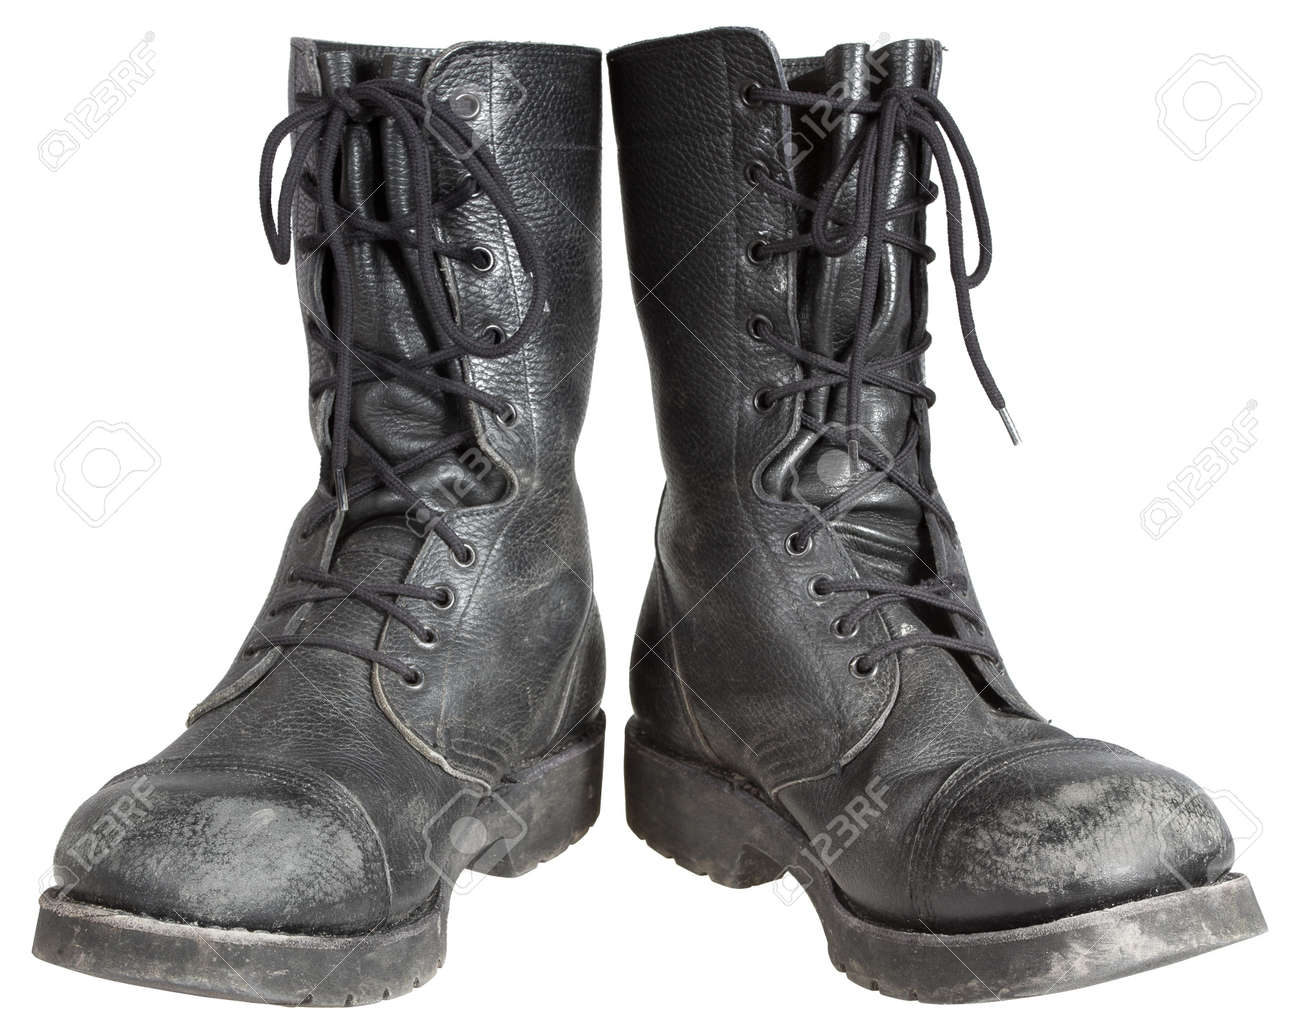 c9d8c2a57c4 Used Military Boots Isolated On White Background Stock Photo ...